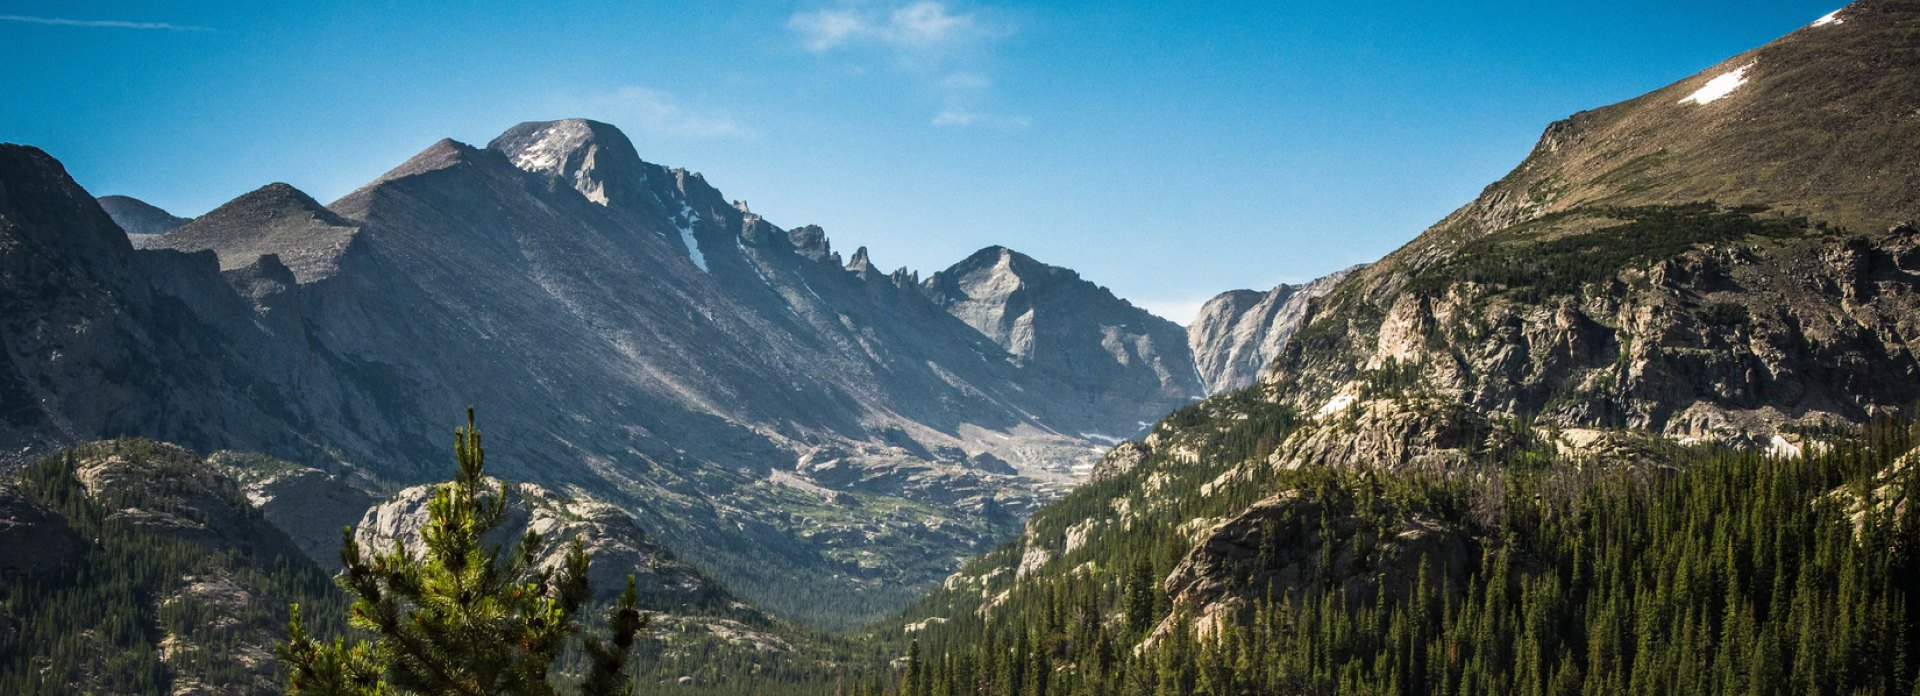 21 AWESOME PLACES TO SEE IN COLORADO